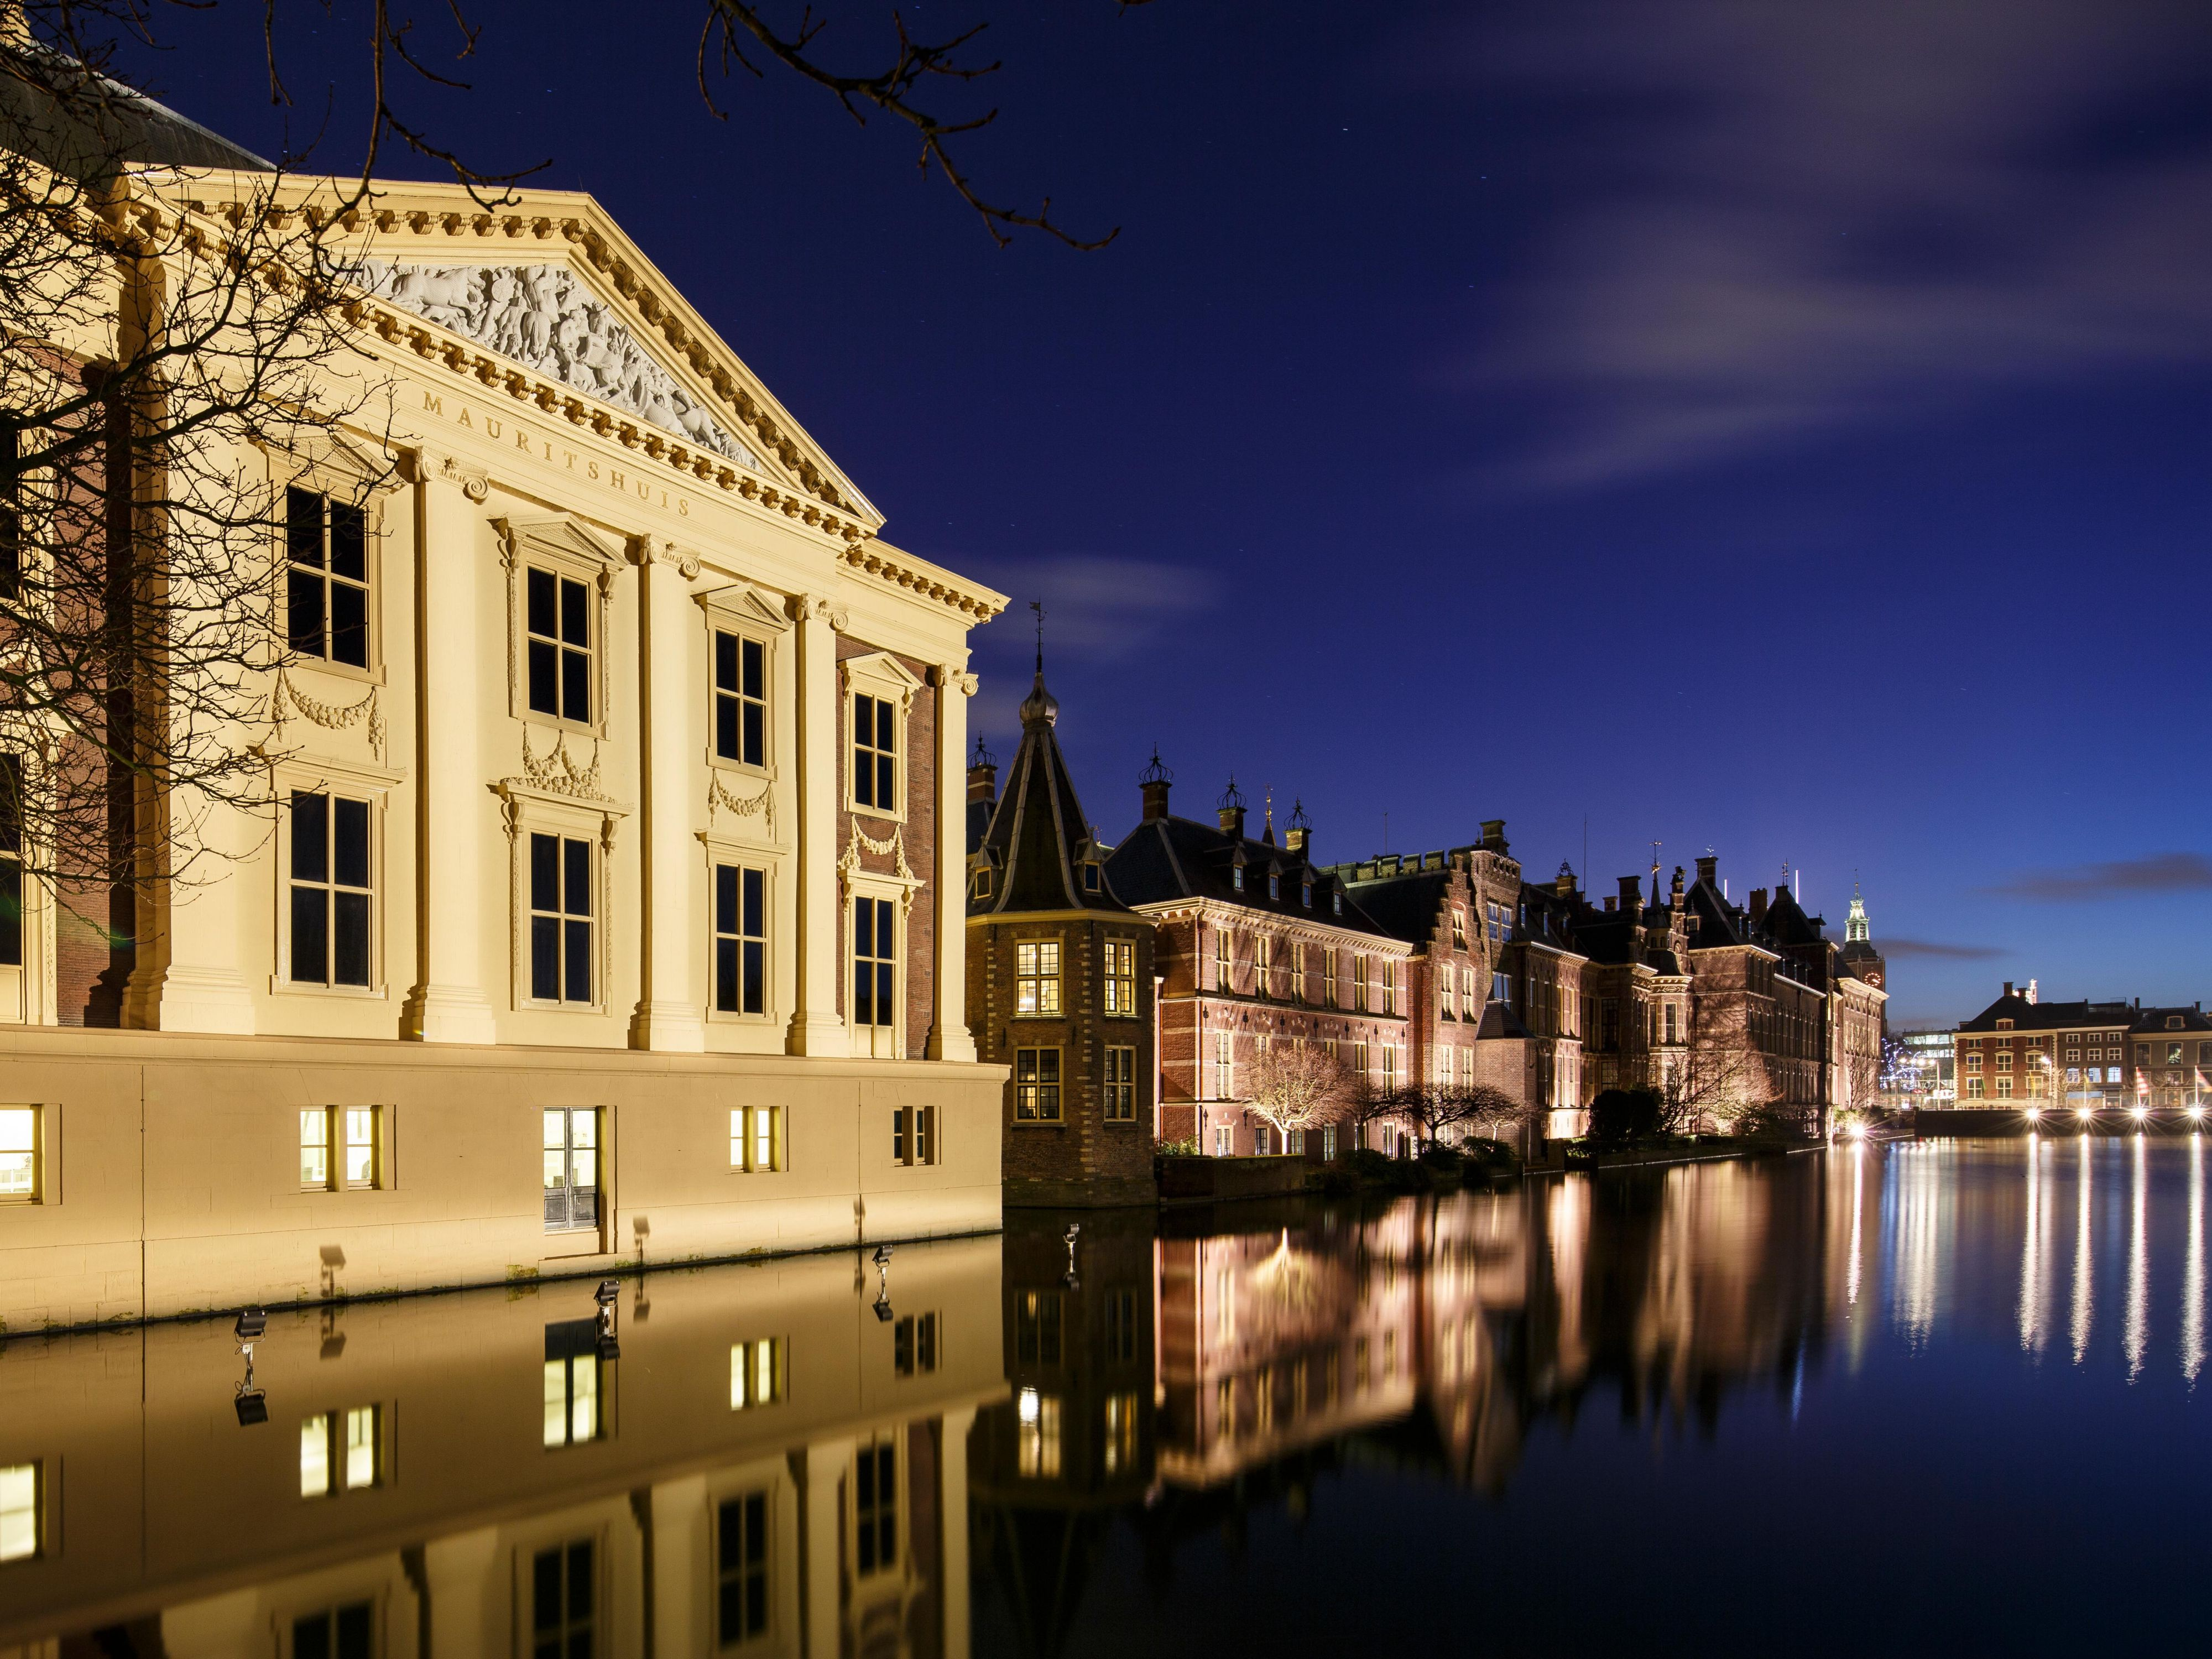 The Mauritshuis Art Museum from the bridge